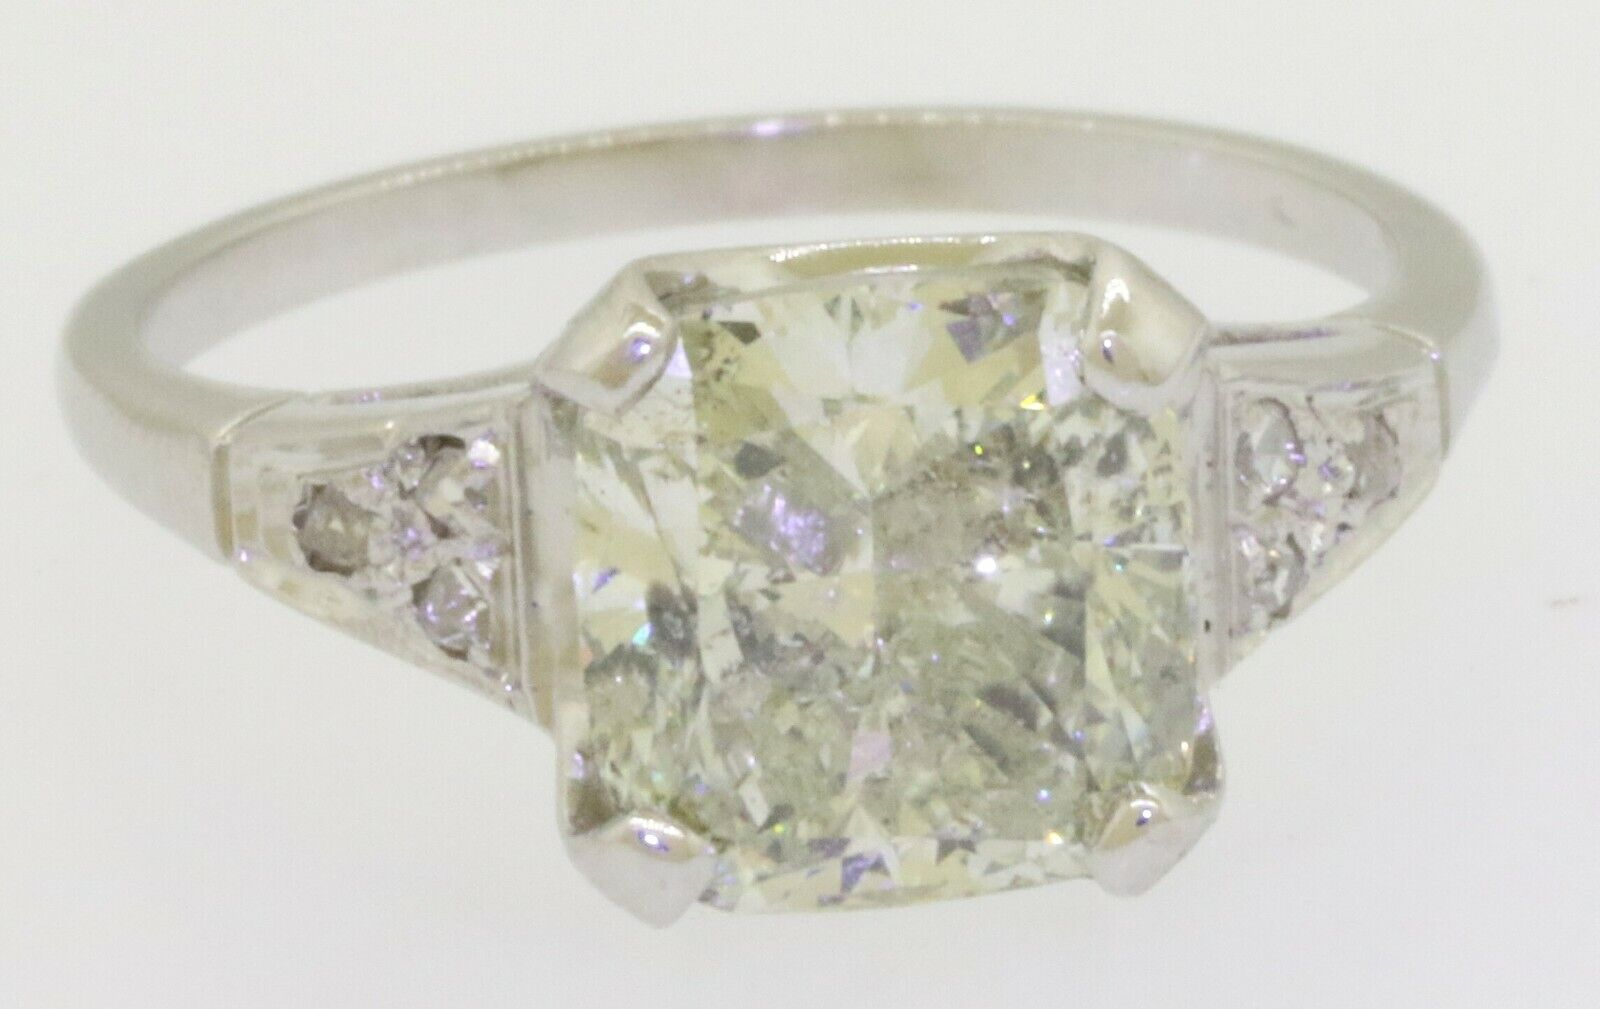 14K white gold 3.46CTW Radiant diamond wedding/engagement ring w/ 3.40CT ctr.